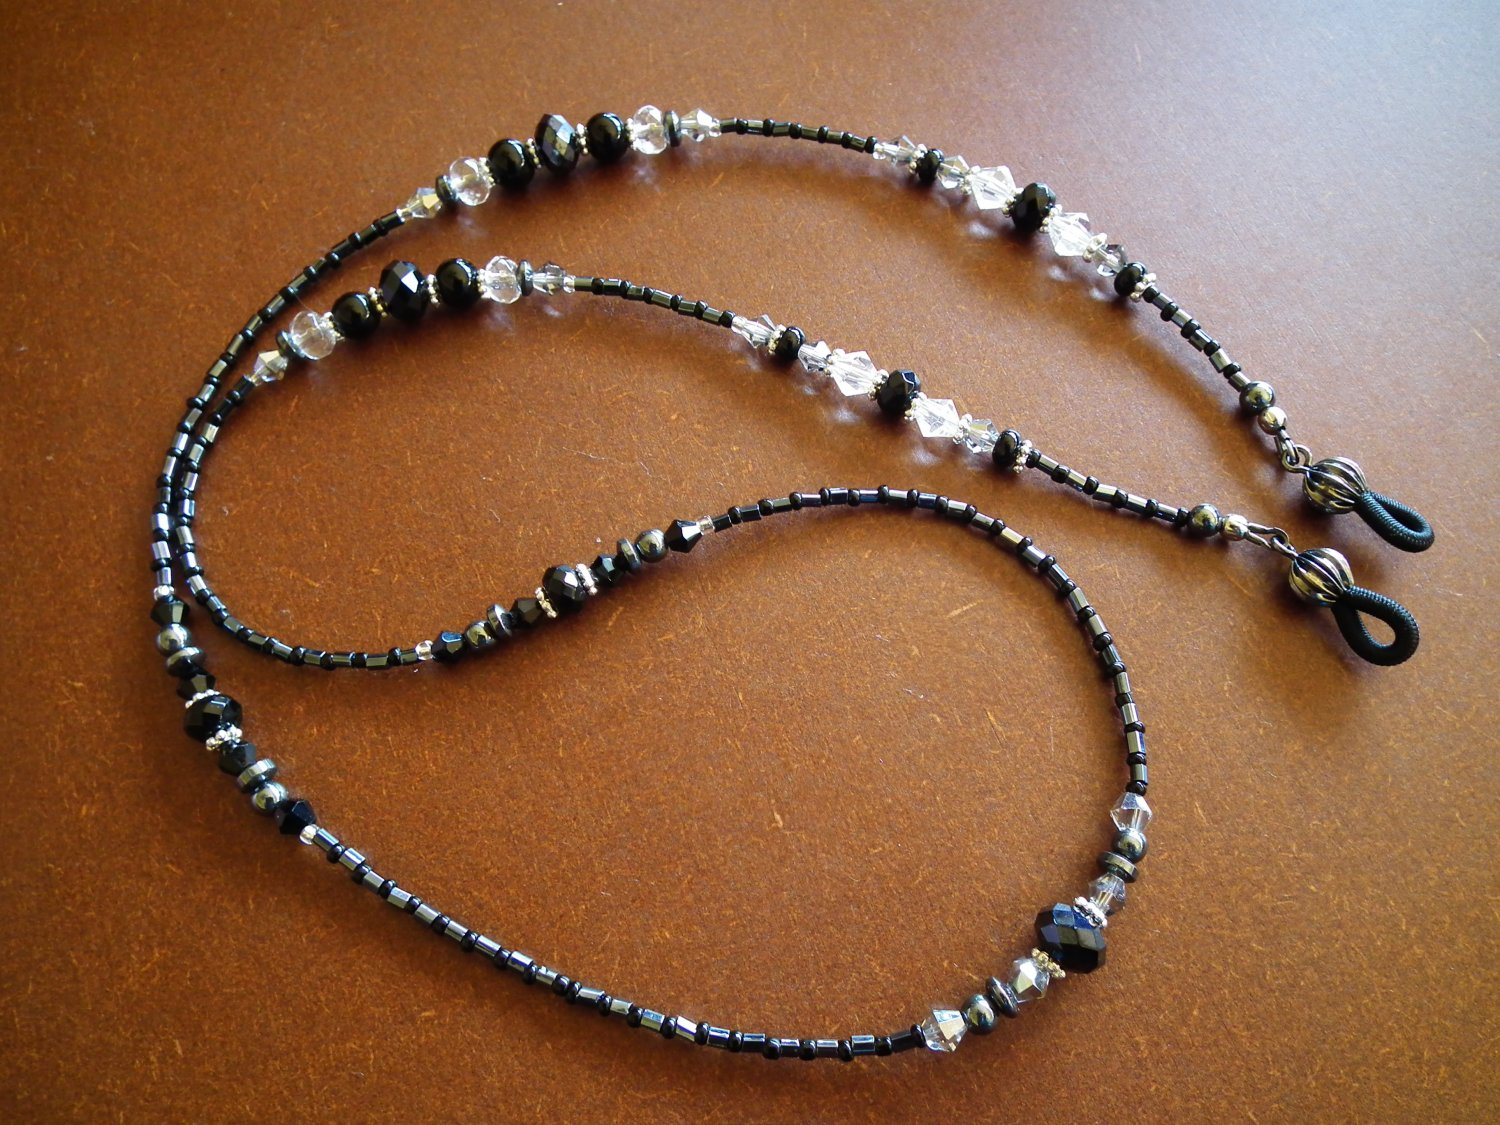 ***SOLD*** Onyx and Hematite Eyeglass Chain